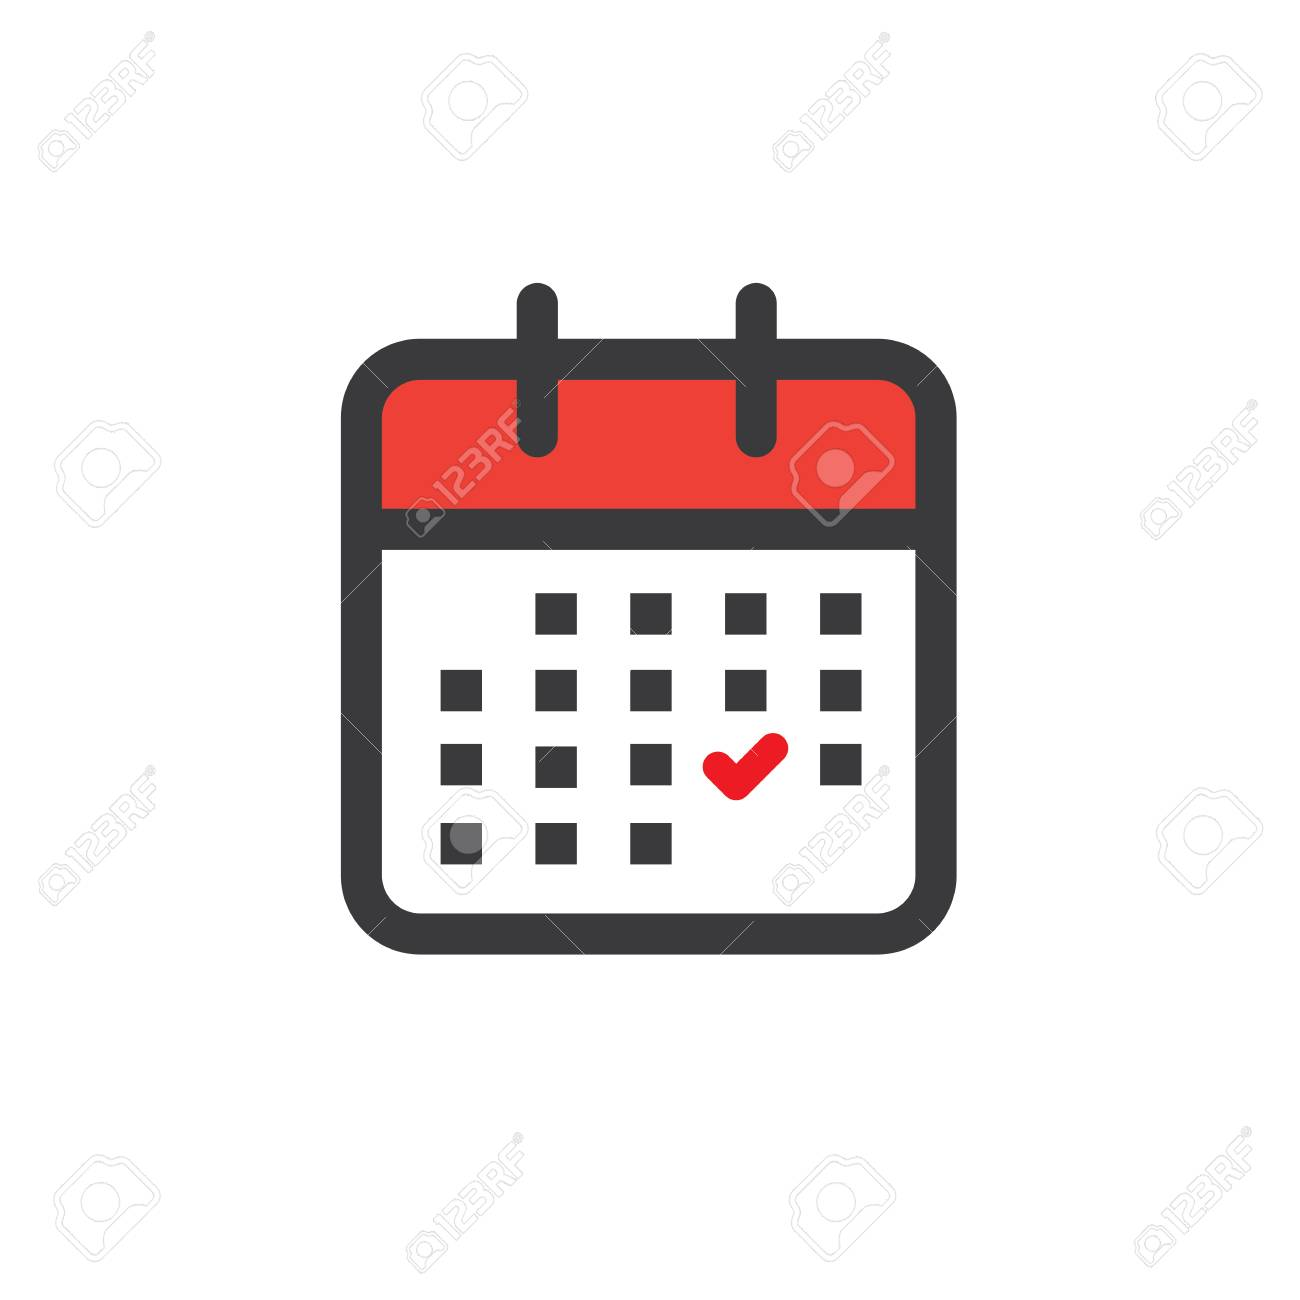 Illustration Calendrier.Calendar Image With Specific Date